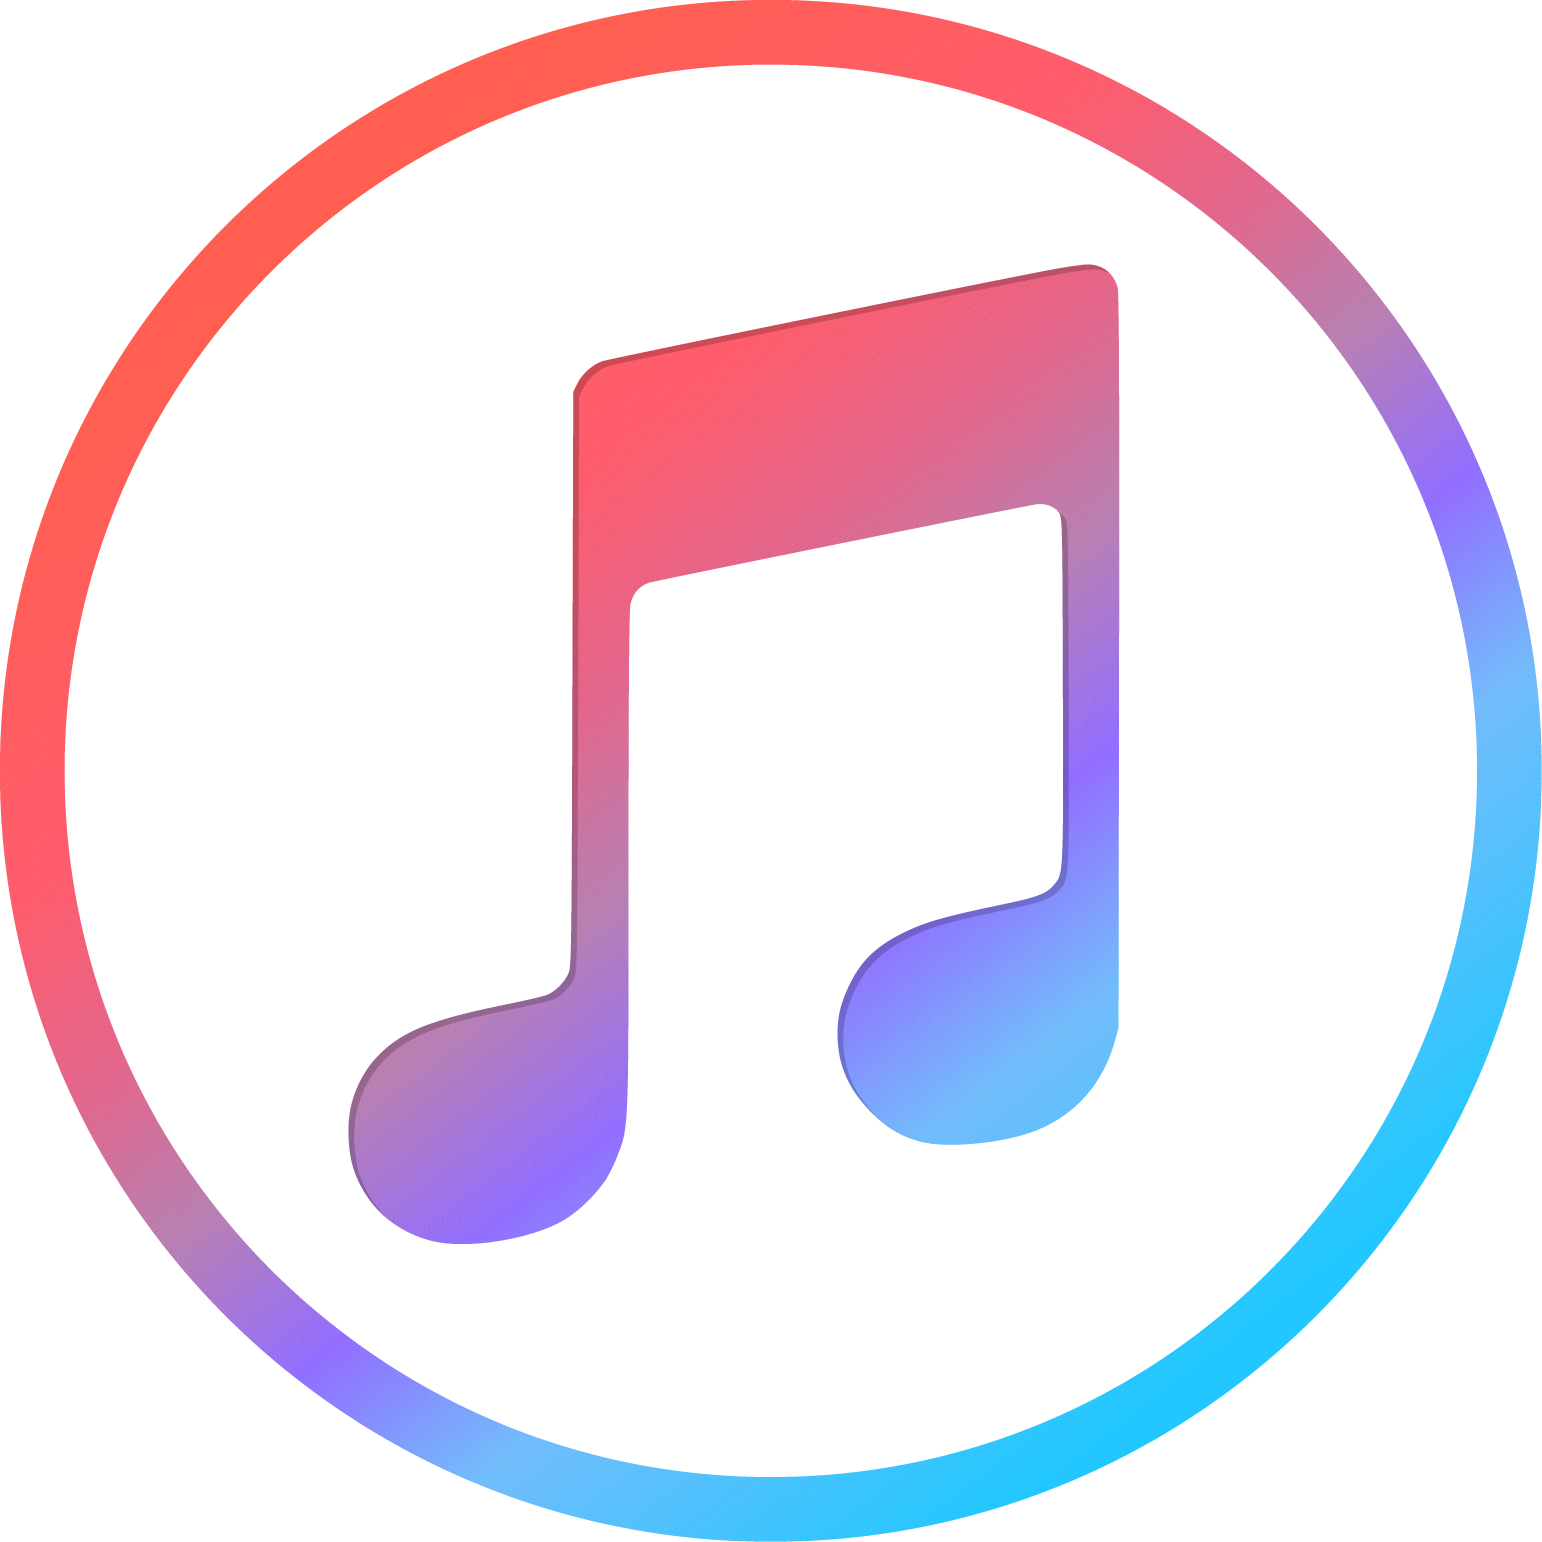 download logo itunes icon svg eps png psd ai vector color ...